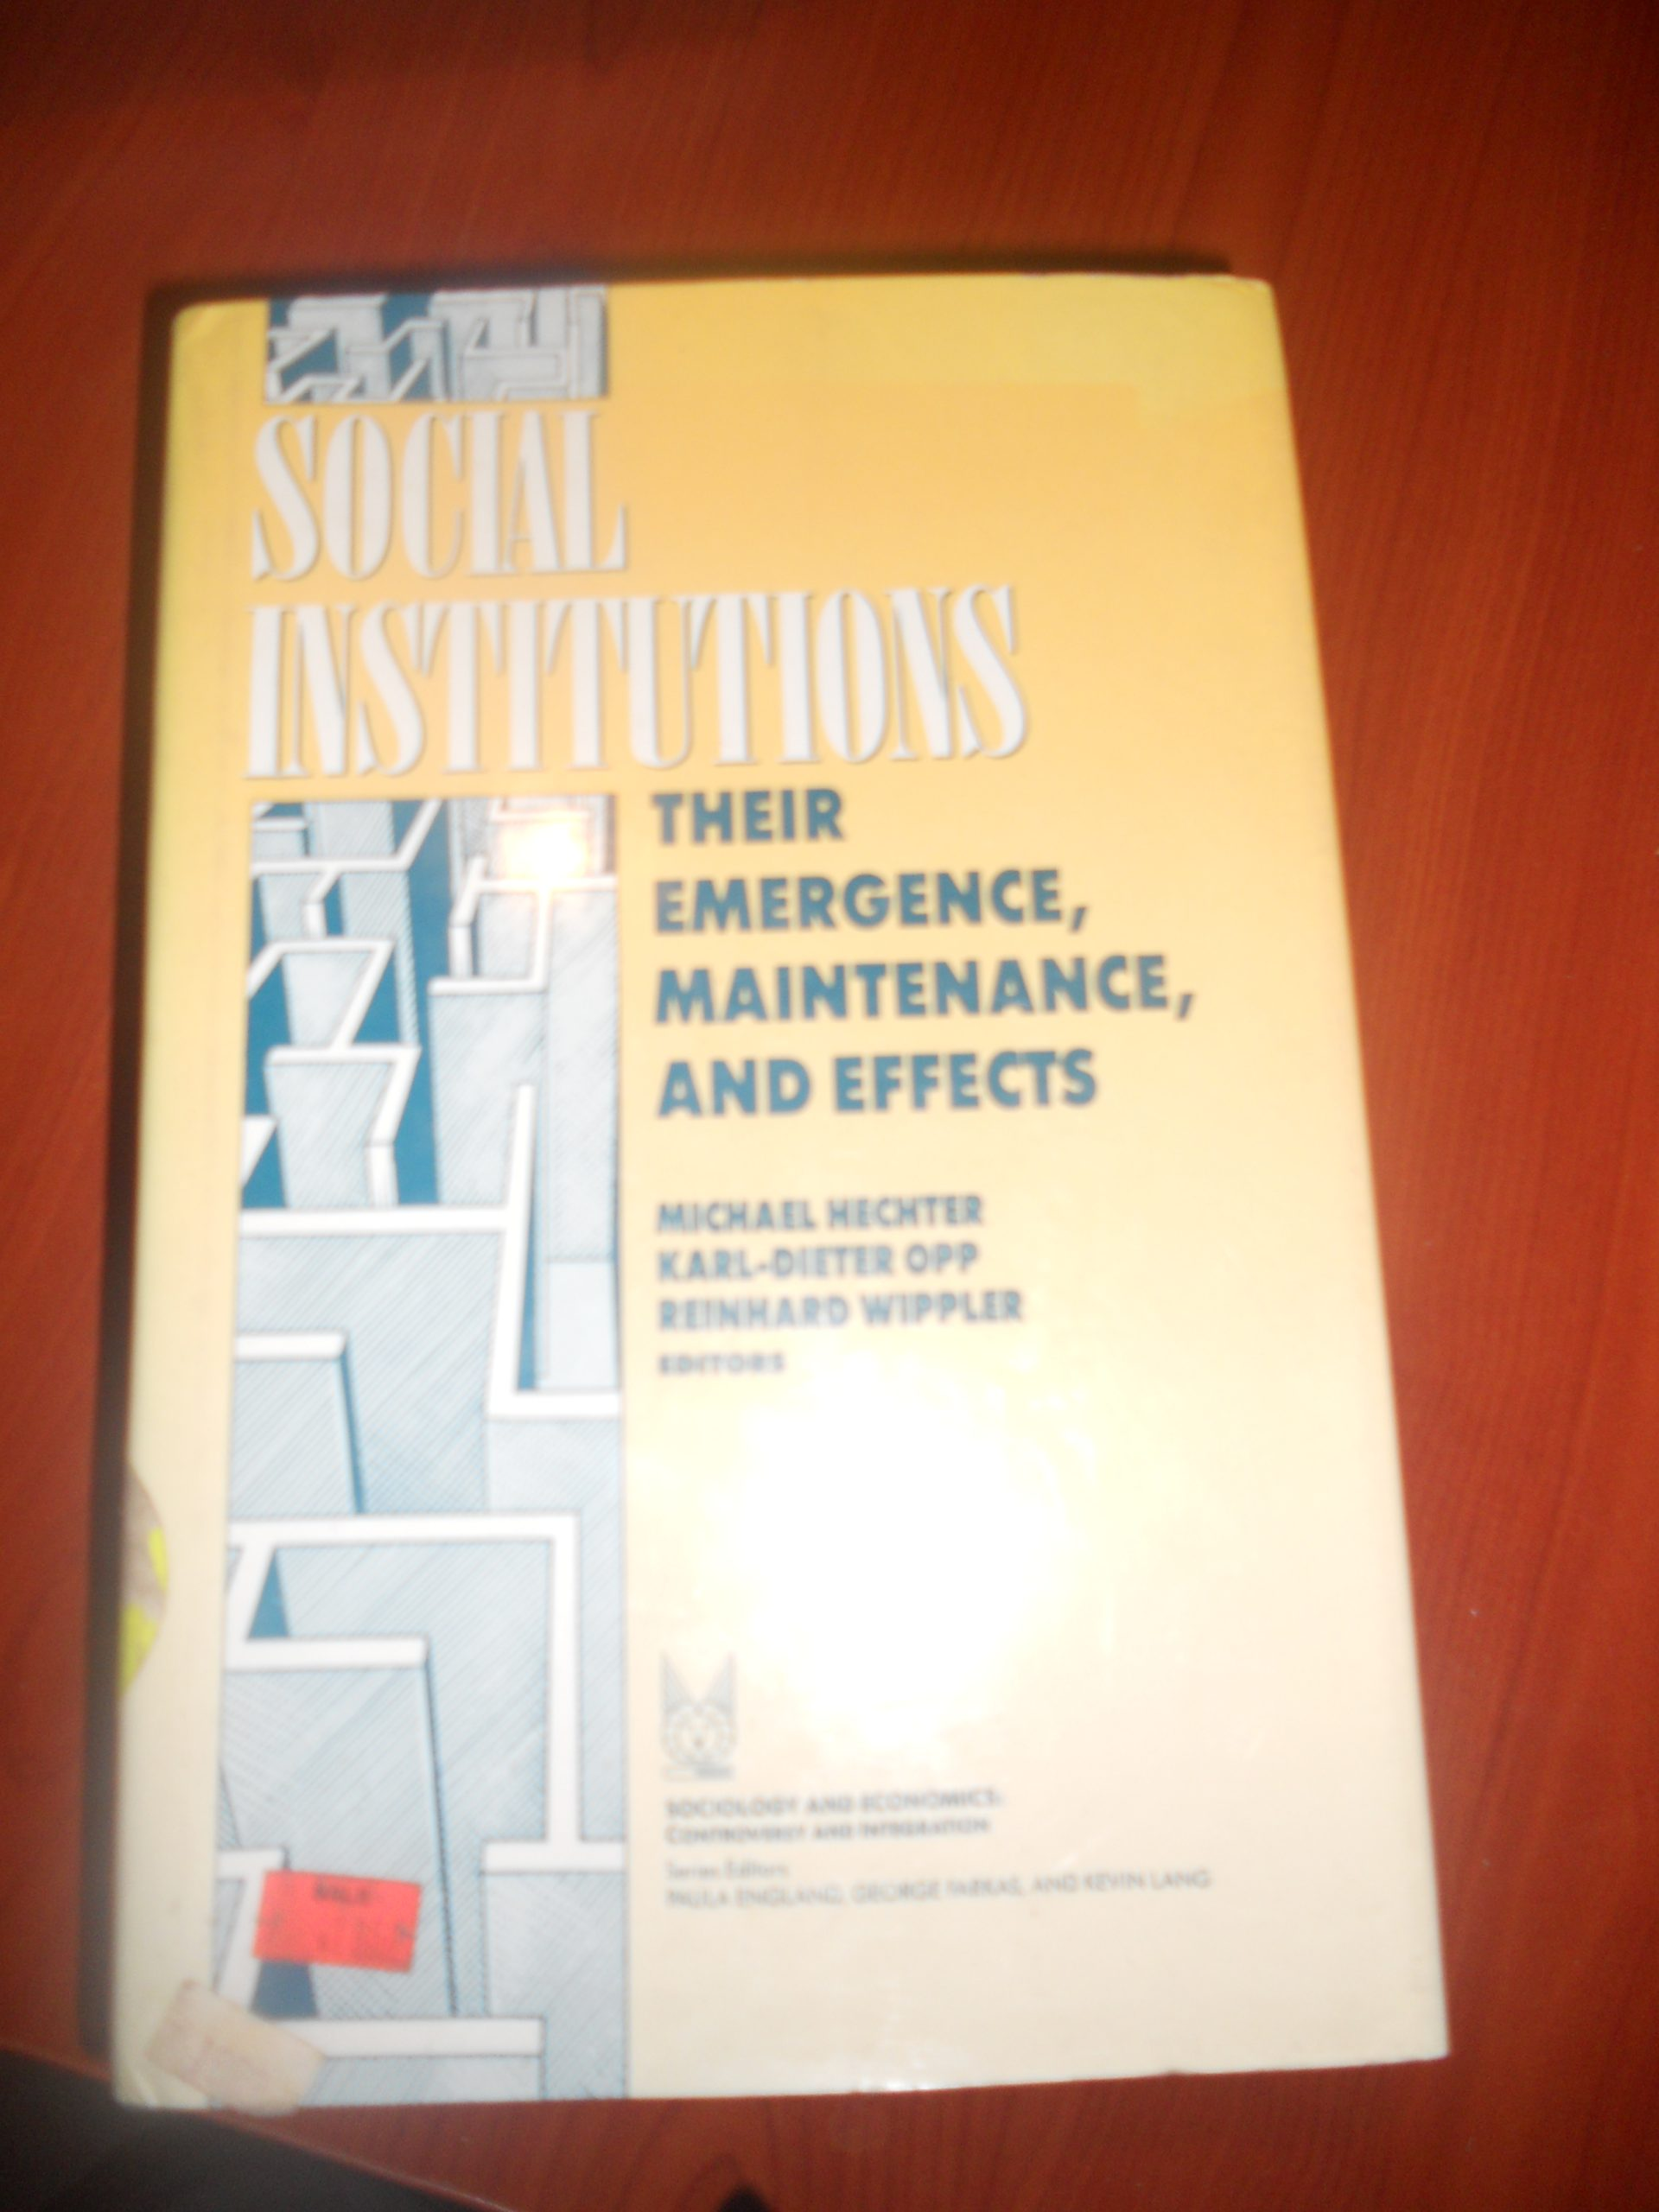 SOCIAL INSTİTUTİONS-Theır Emergence Maıntenance And Effects(Karl Dieter Obb)/25 TL